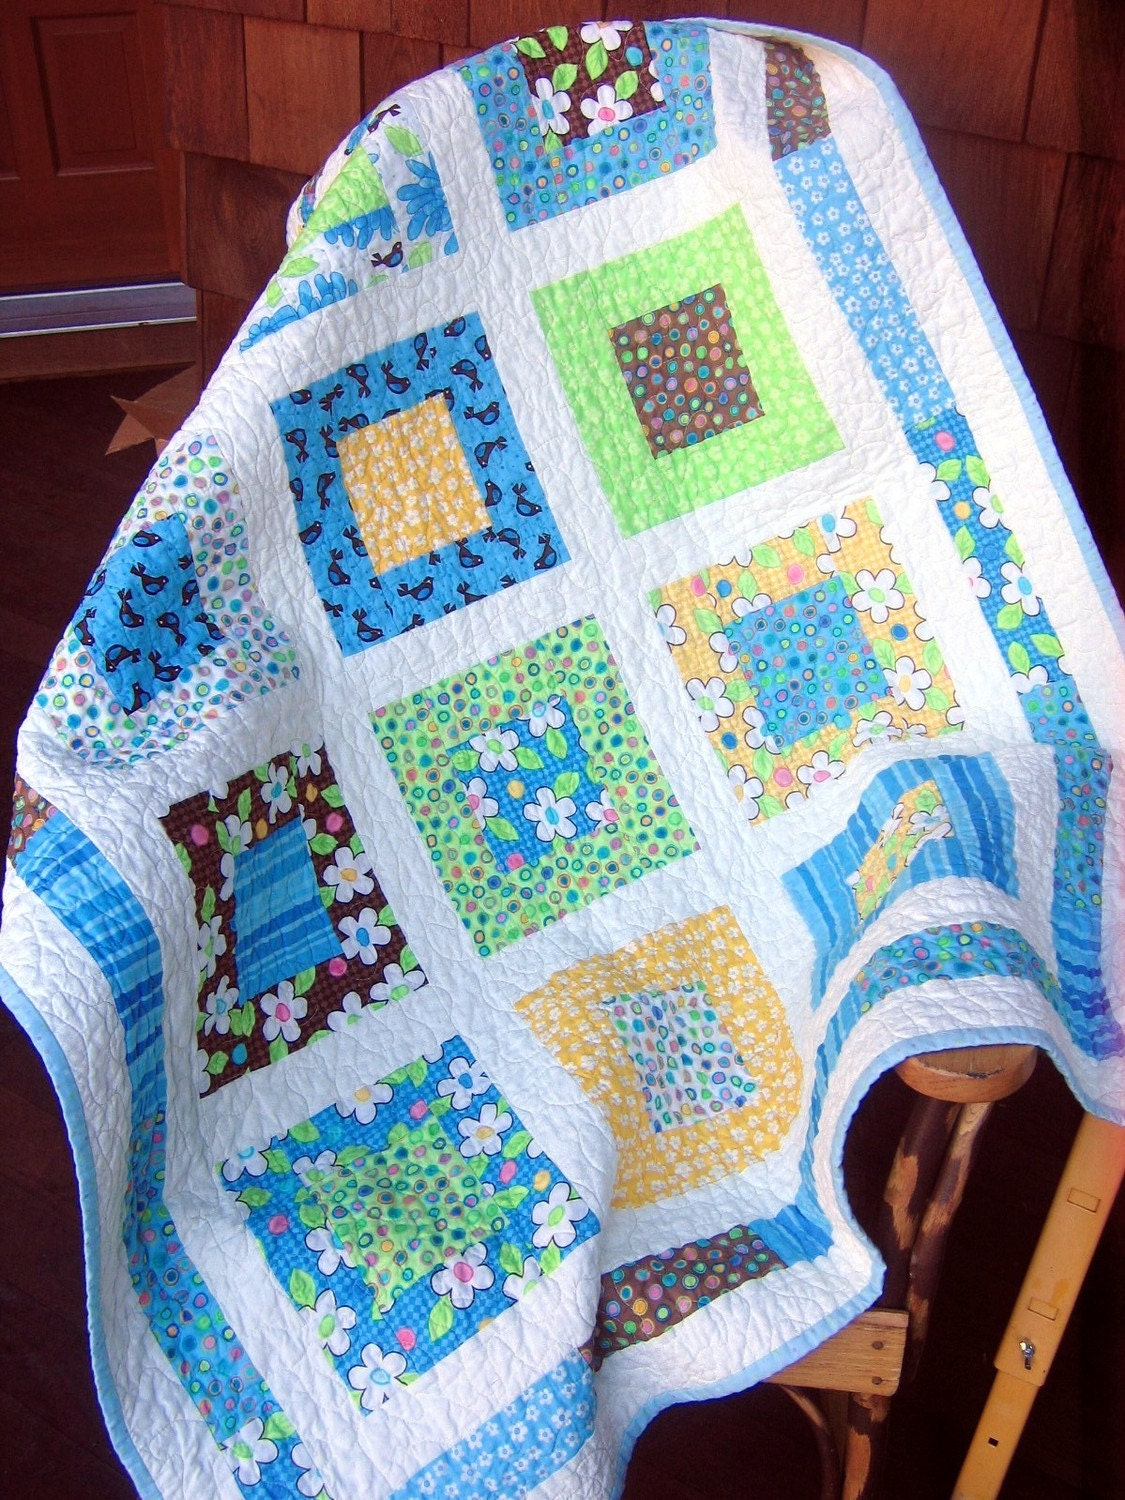 ON SALE Moda BIRDIE Baby BOY or Toddler Crib Quilt ...pattern